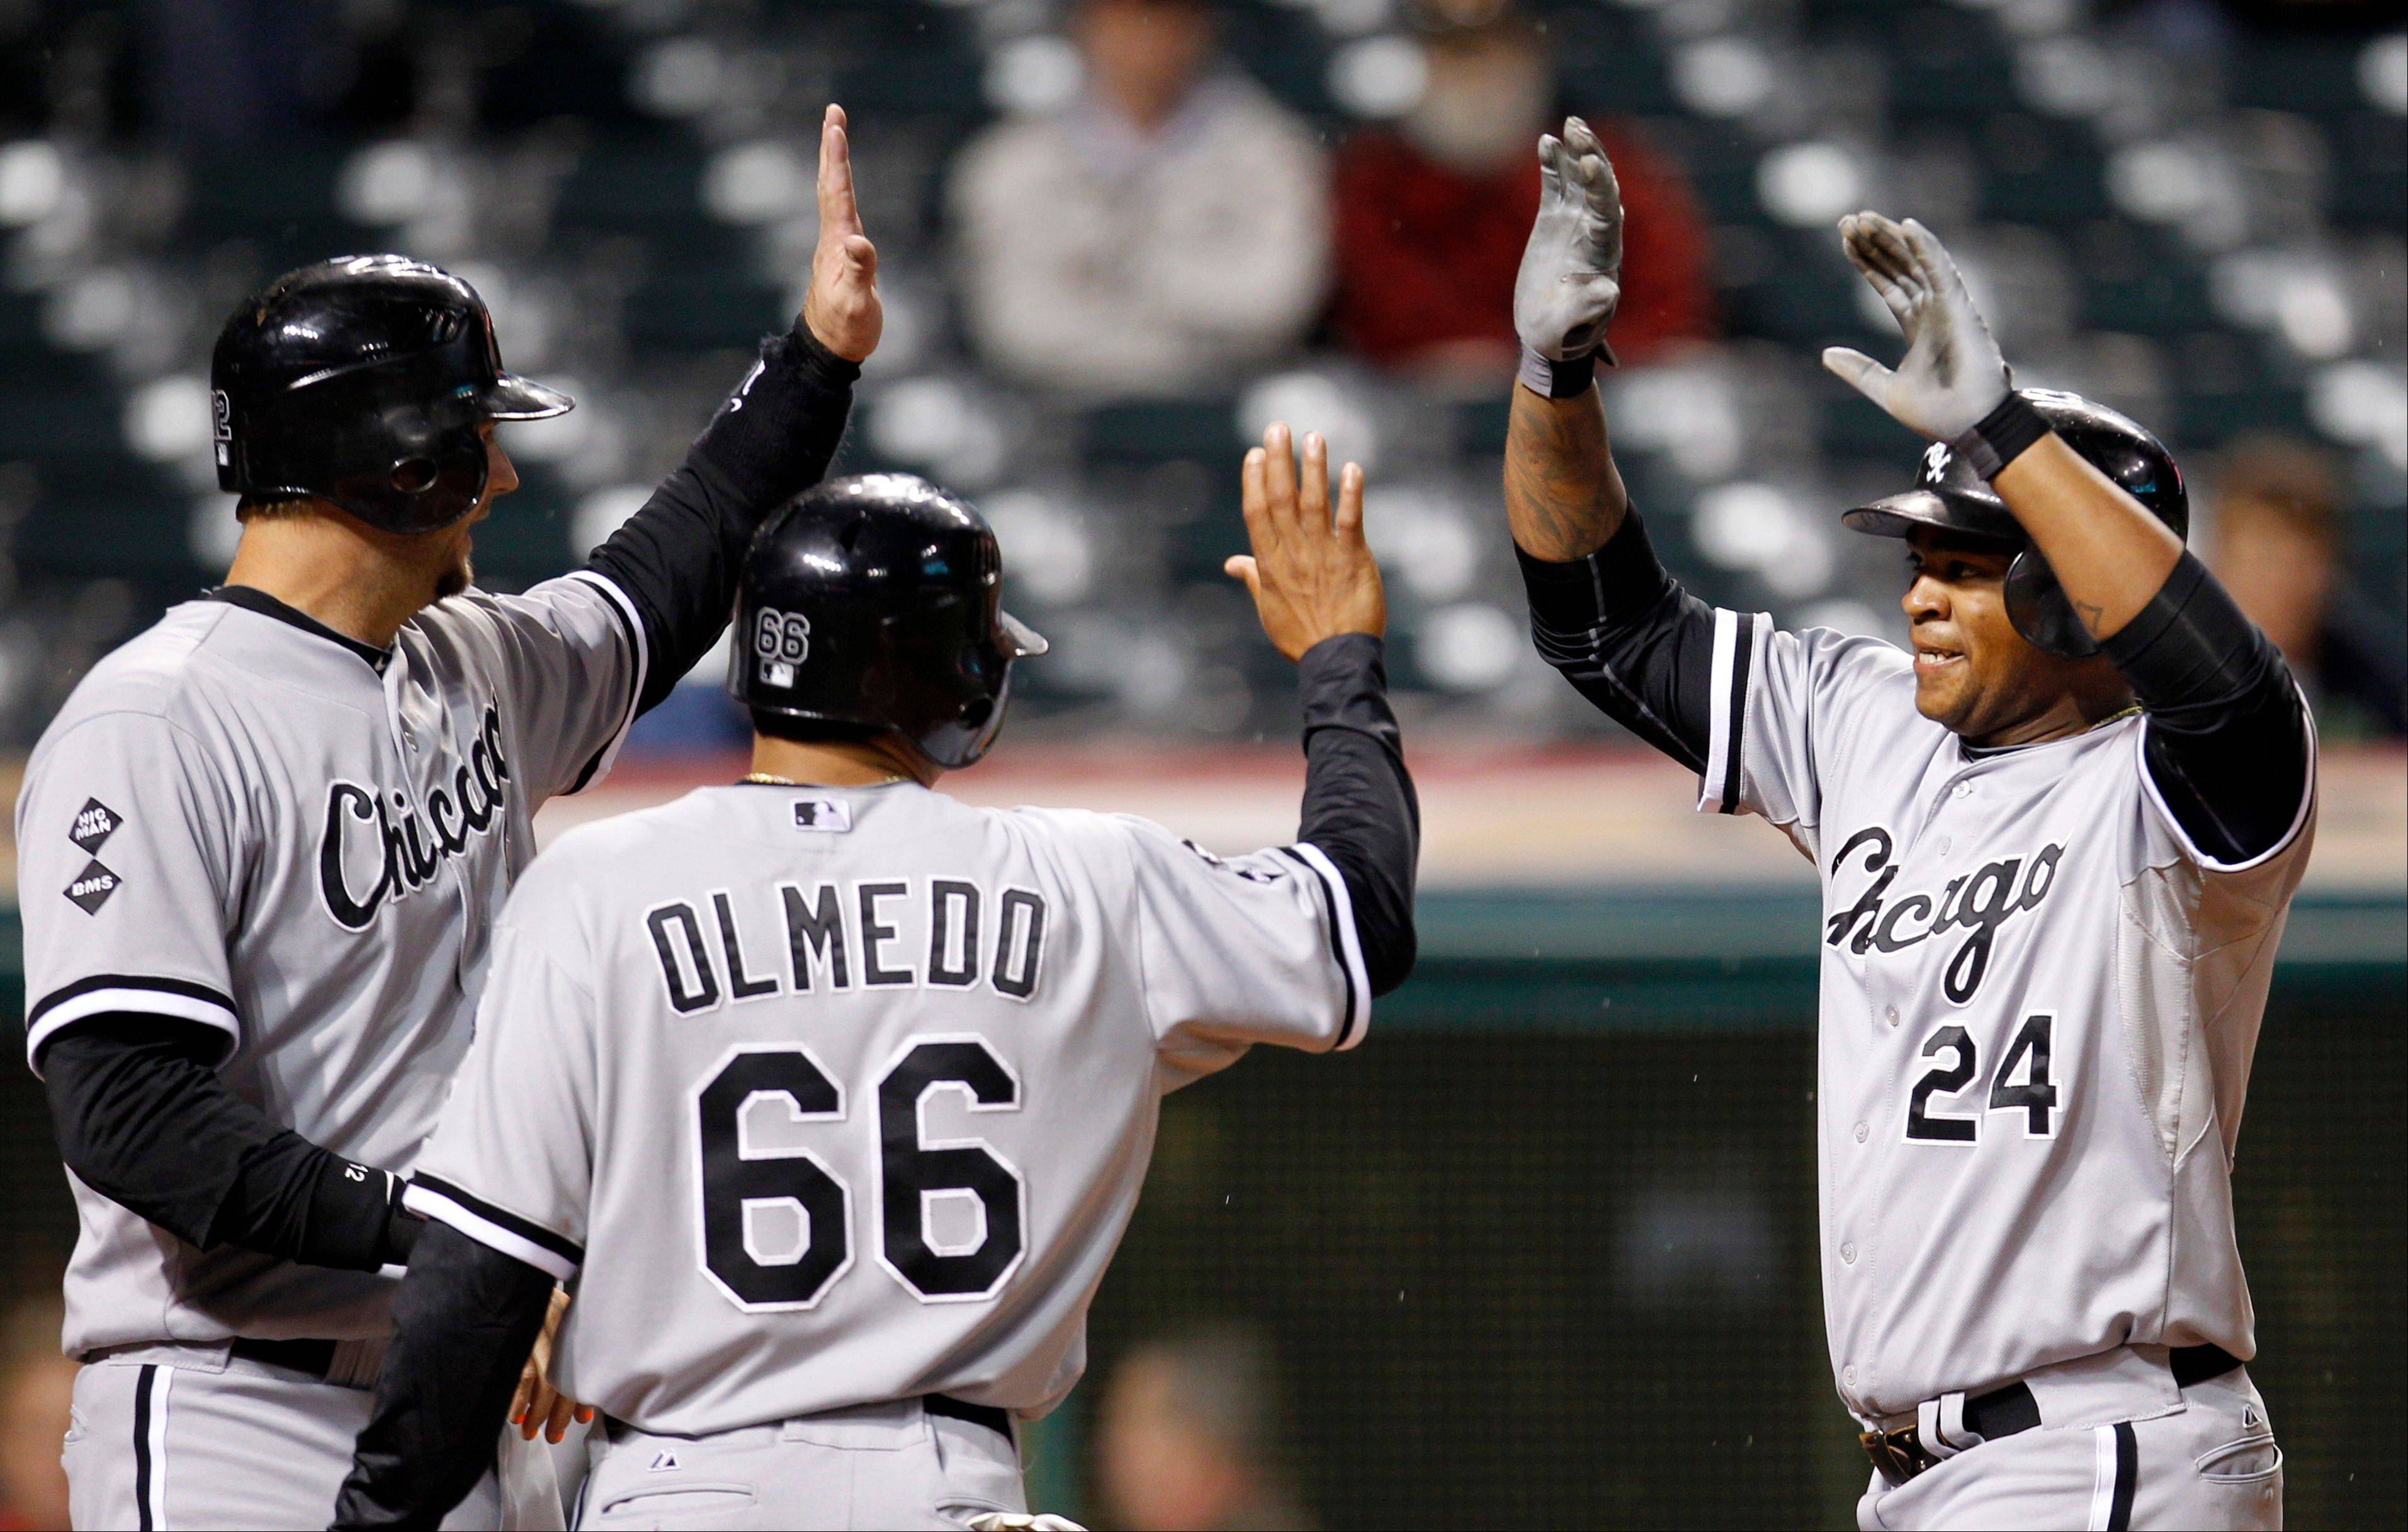 Dayan Viciedo, right, is congratulated by A.J. Pierzynski, left, and Ray Olmedo after Viciedo hit a grand slam in the ninth inning Monday in Cleveland. Pierzynski, Olmedo and Jordan Danks scored. The White Sox won 11-0.